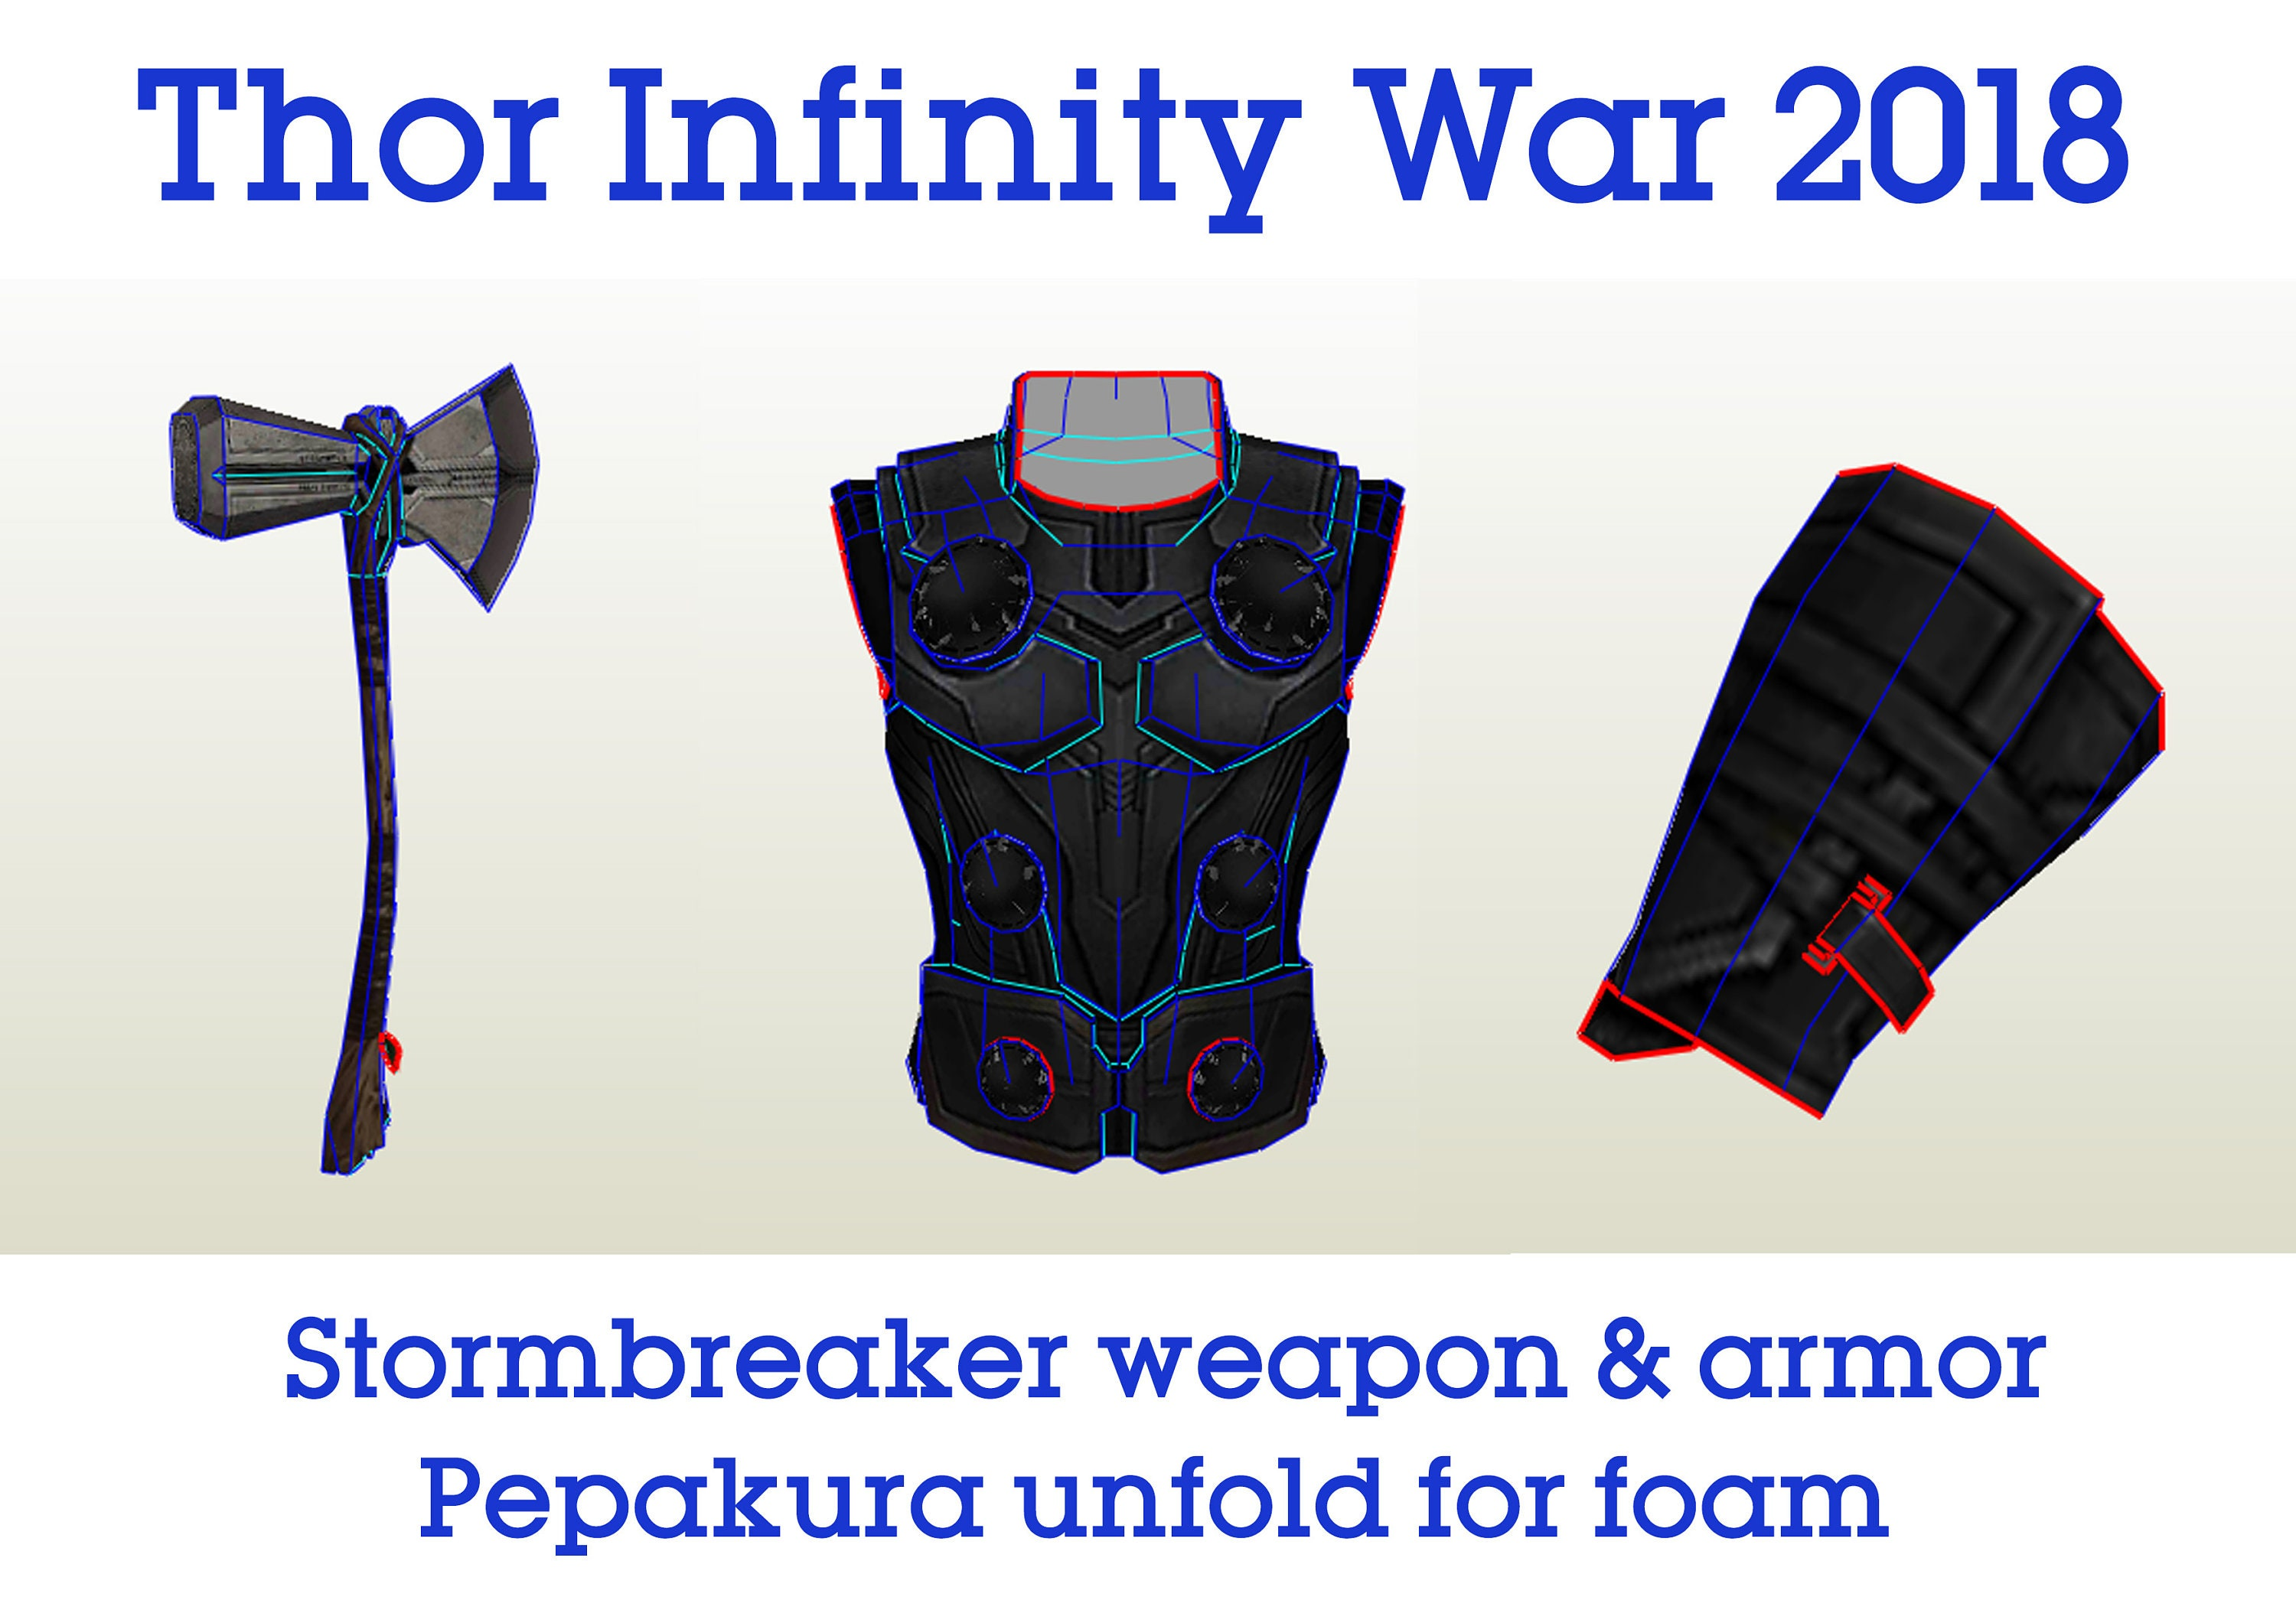 Thor Stormbreaker Weapon Amp Armor Infinity War 2018 Movie